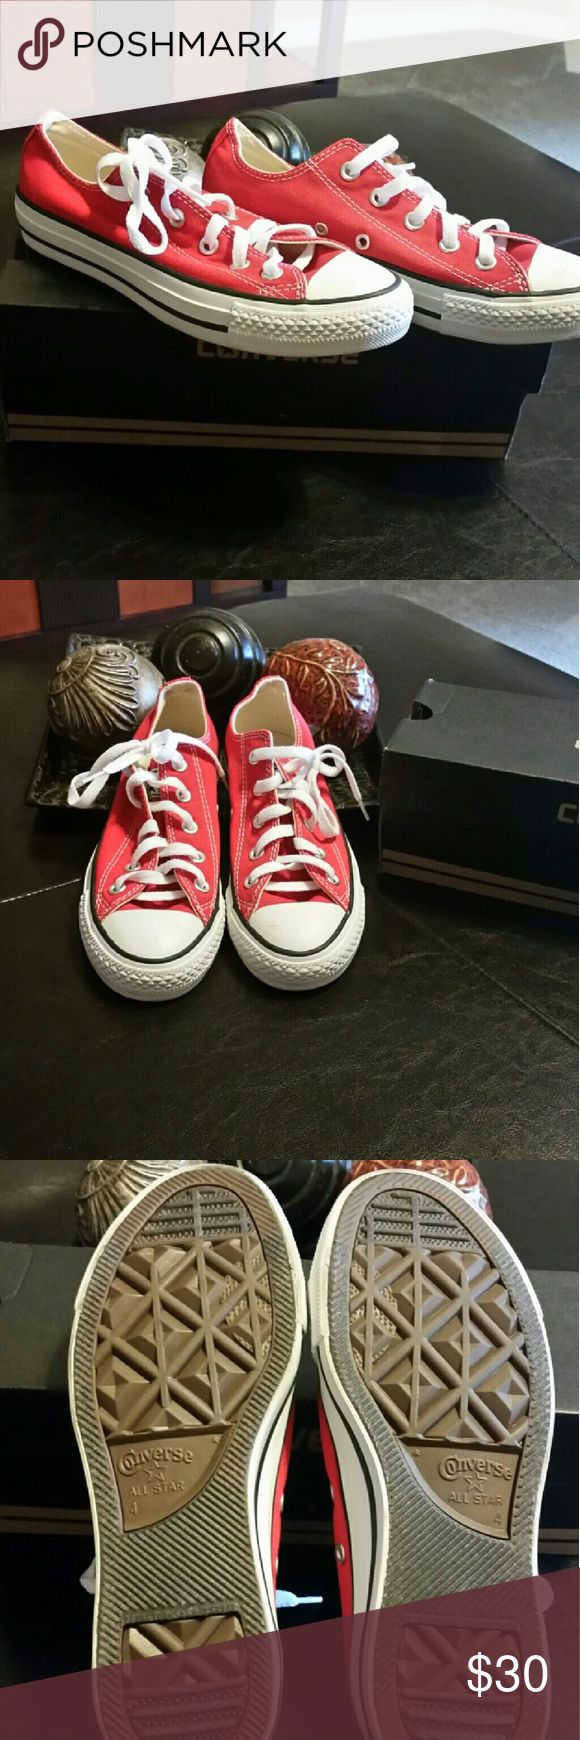 Red Converse All Stars, unisex Cool, red, low-top Converse All Stars! Excellent condition! Worn once! Converse Shoes Sneakers